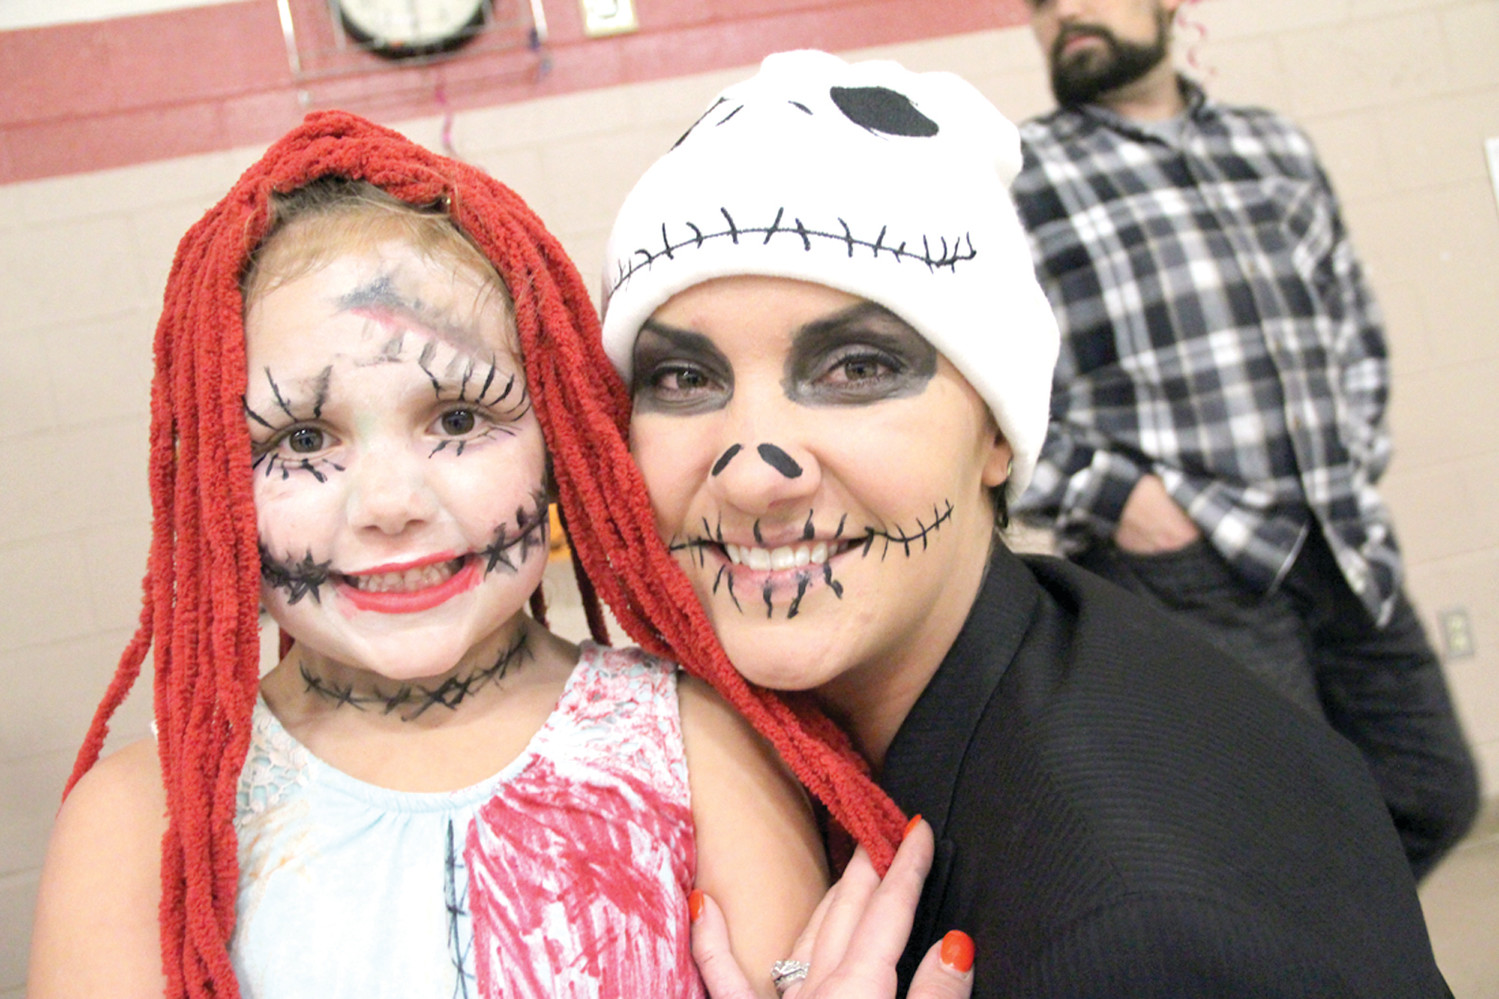 PARTNERS: Emily Zambrano and her daughter Carmella were made up for the dance.